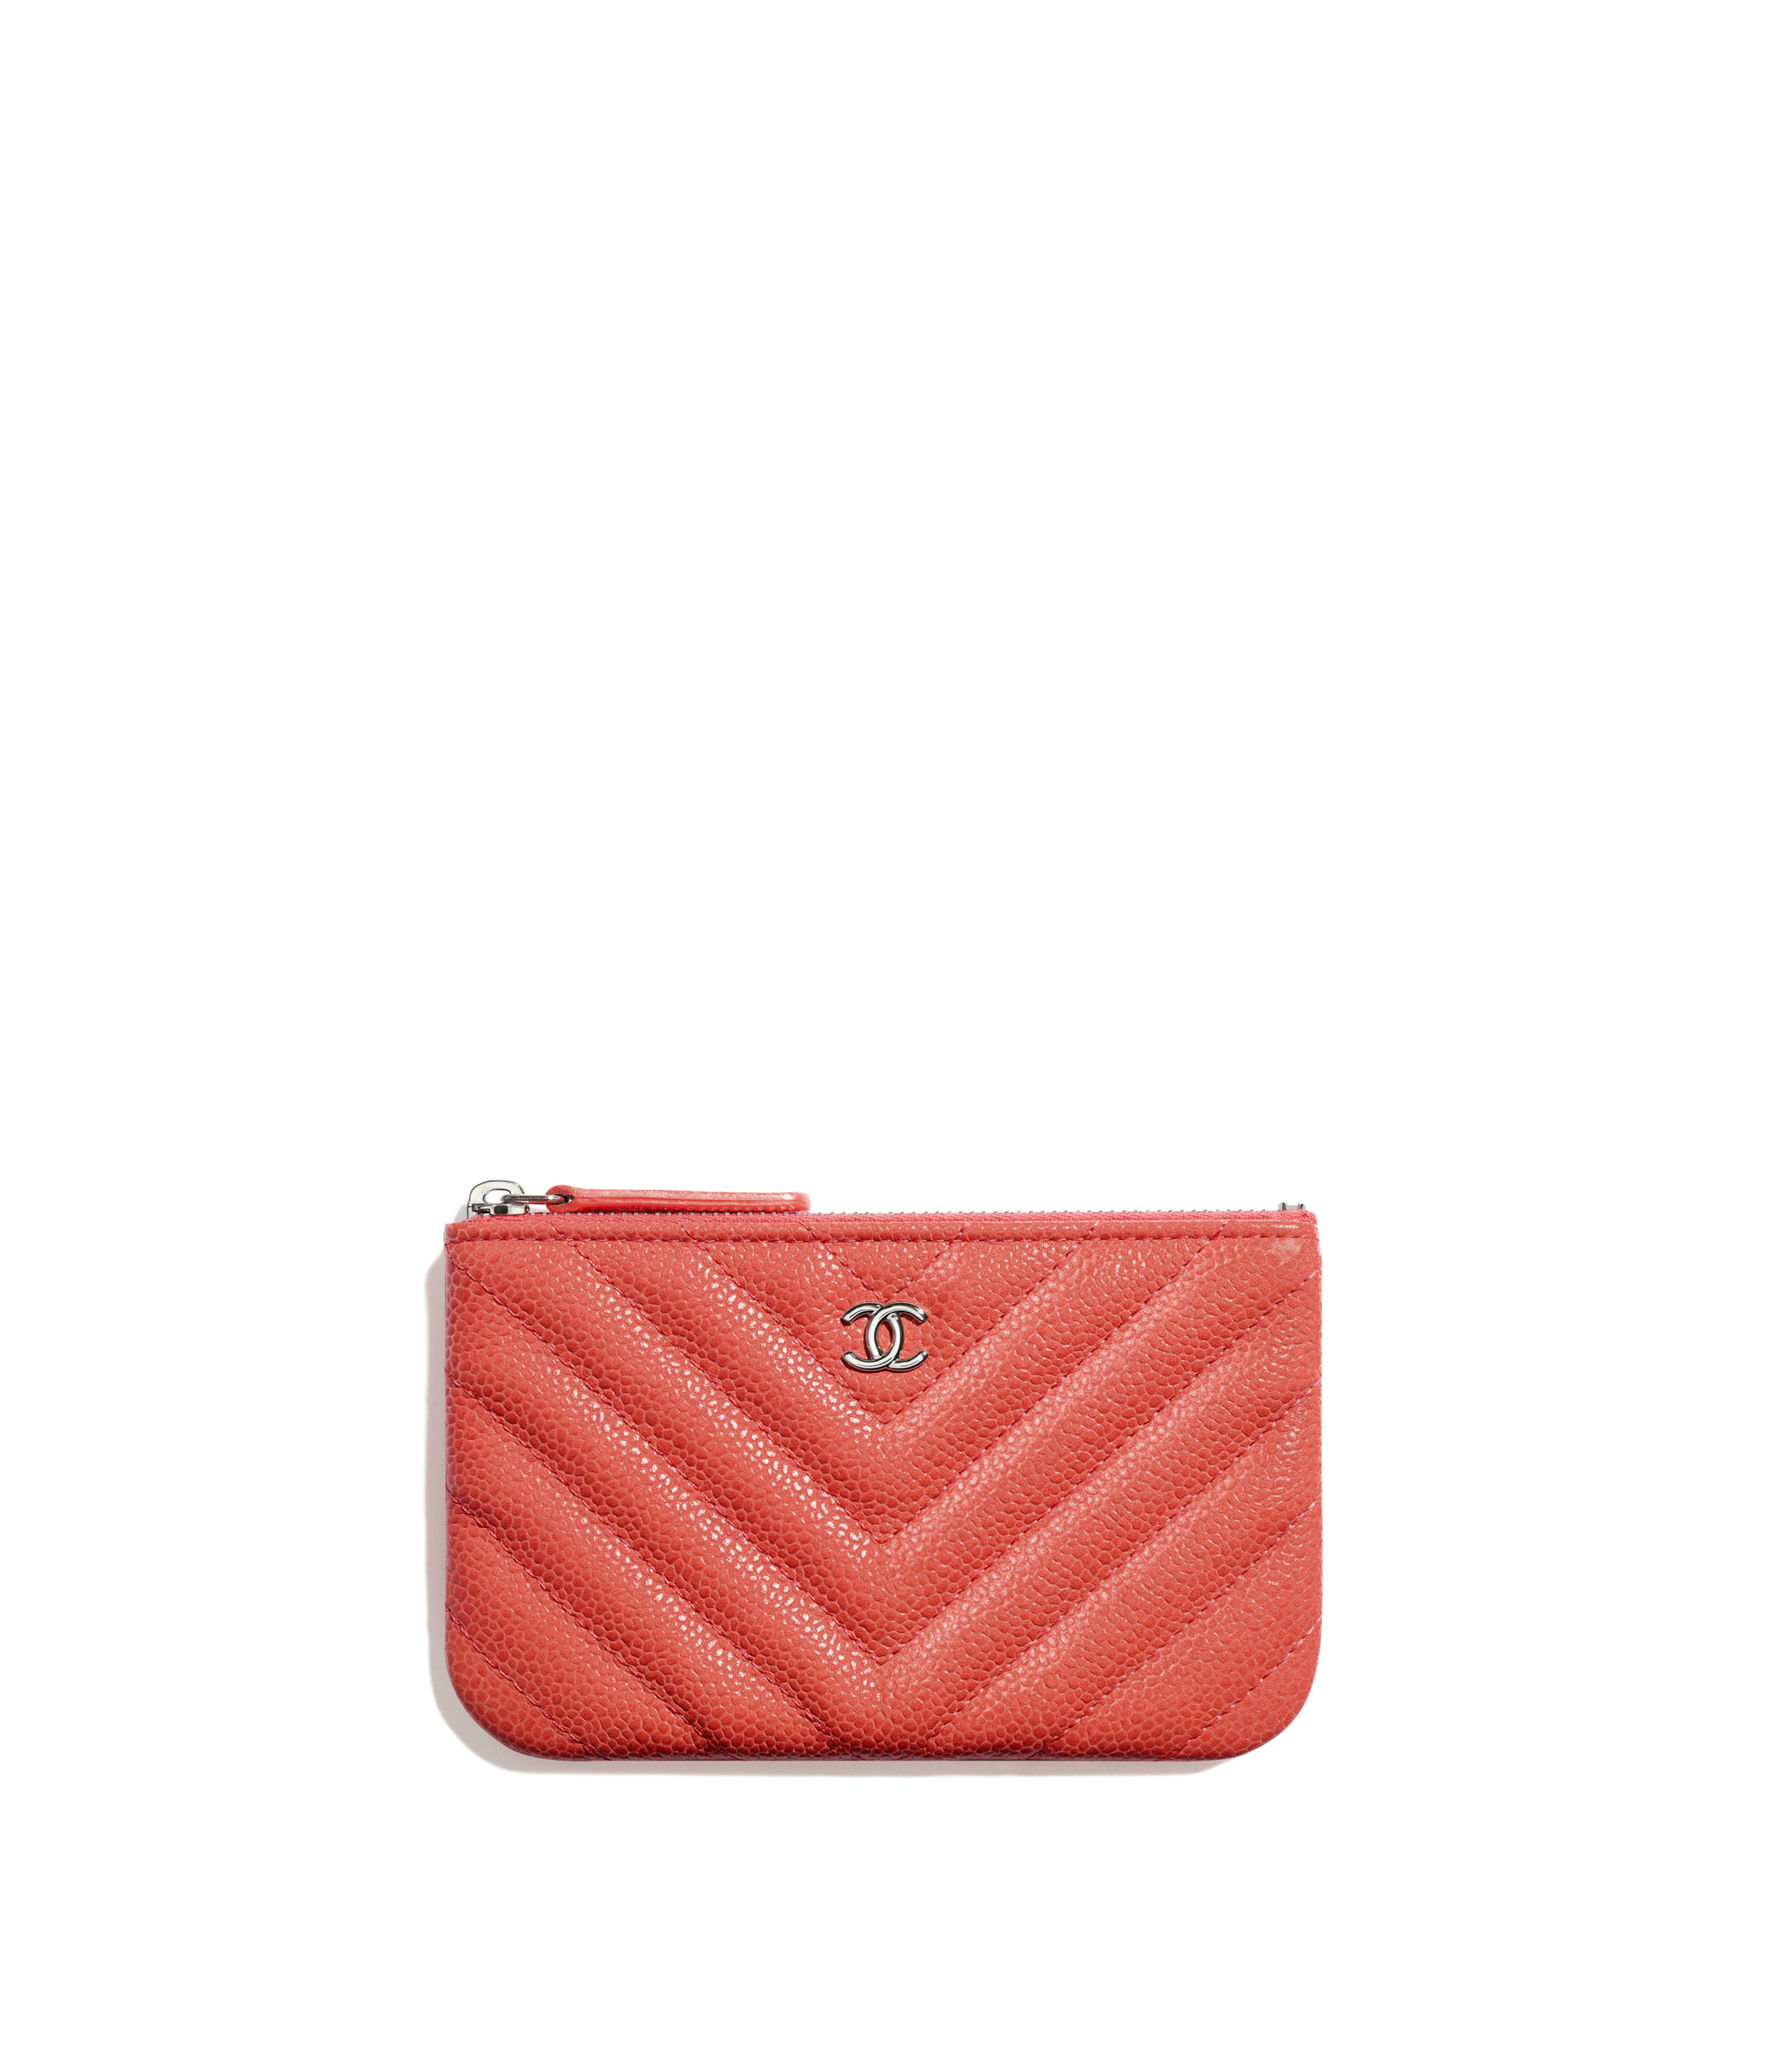 b657bfe7600d Classic Small Pouch Grained Calfskin & Silver-Tone Metal, Coral Ref.  A82365Y840635B650